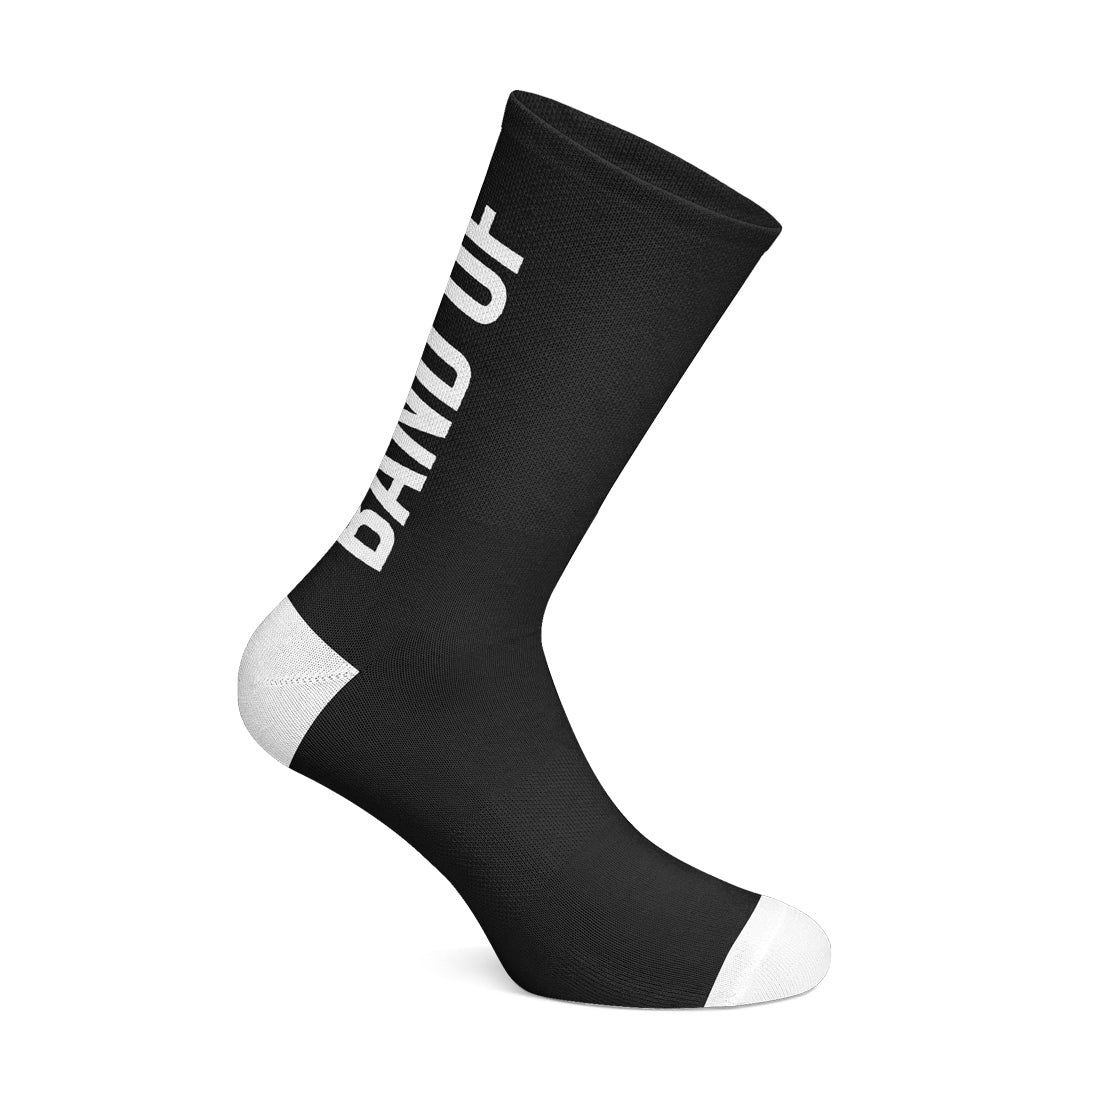 Pro Elevation Socks - Black